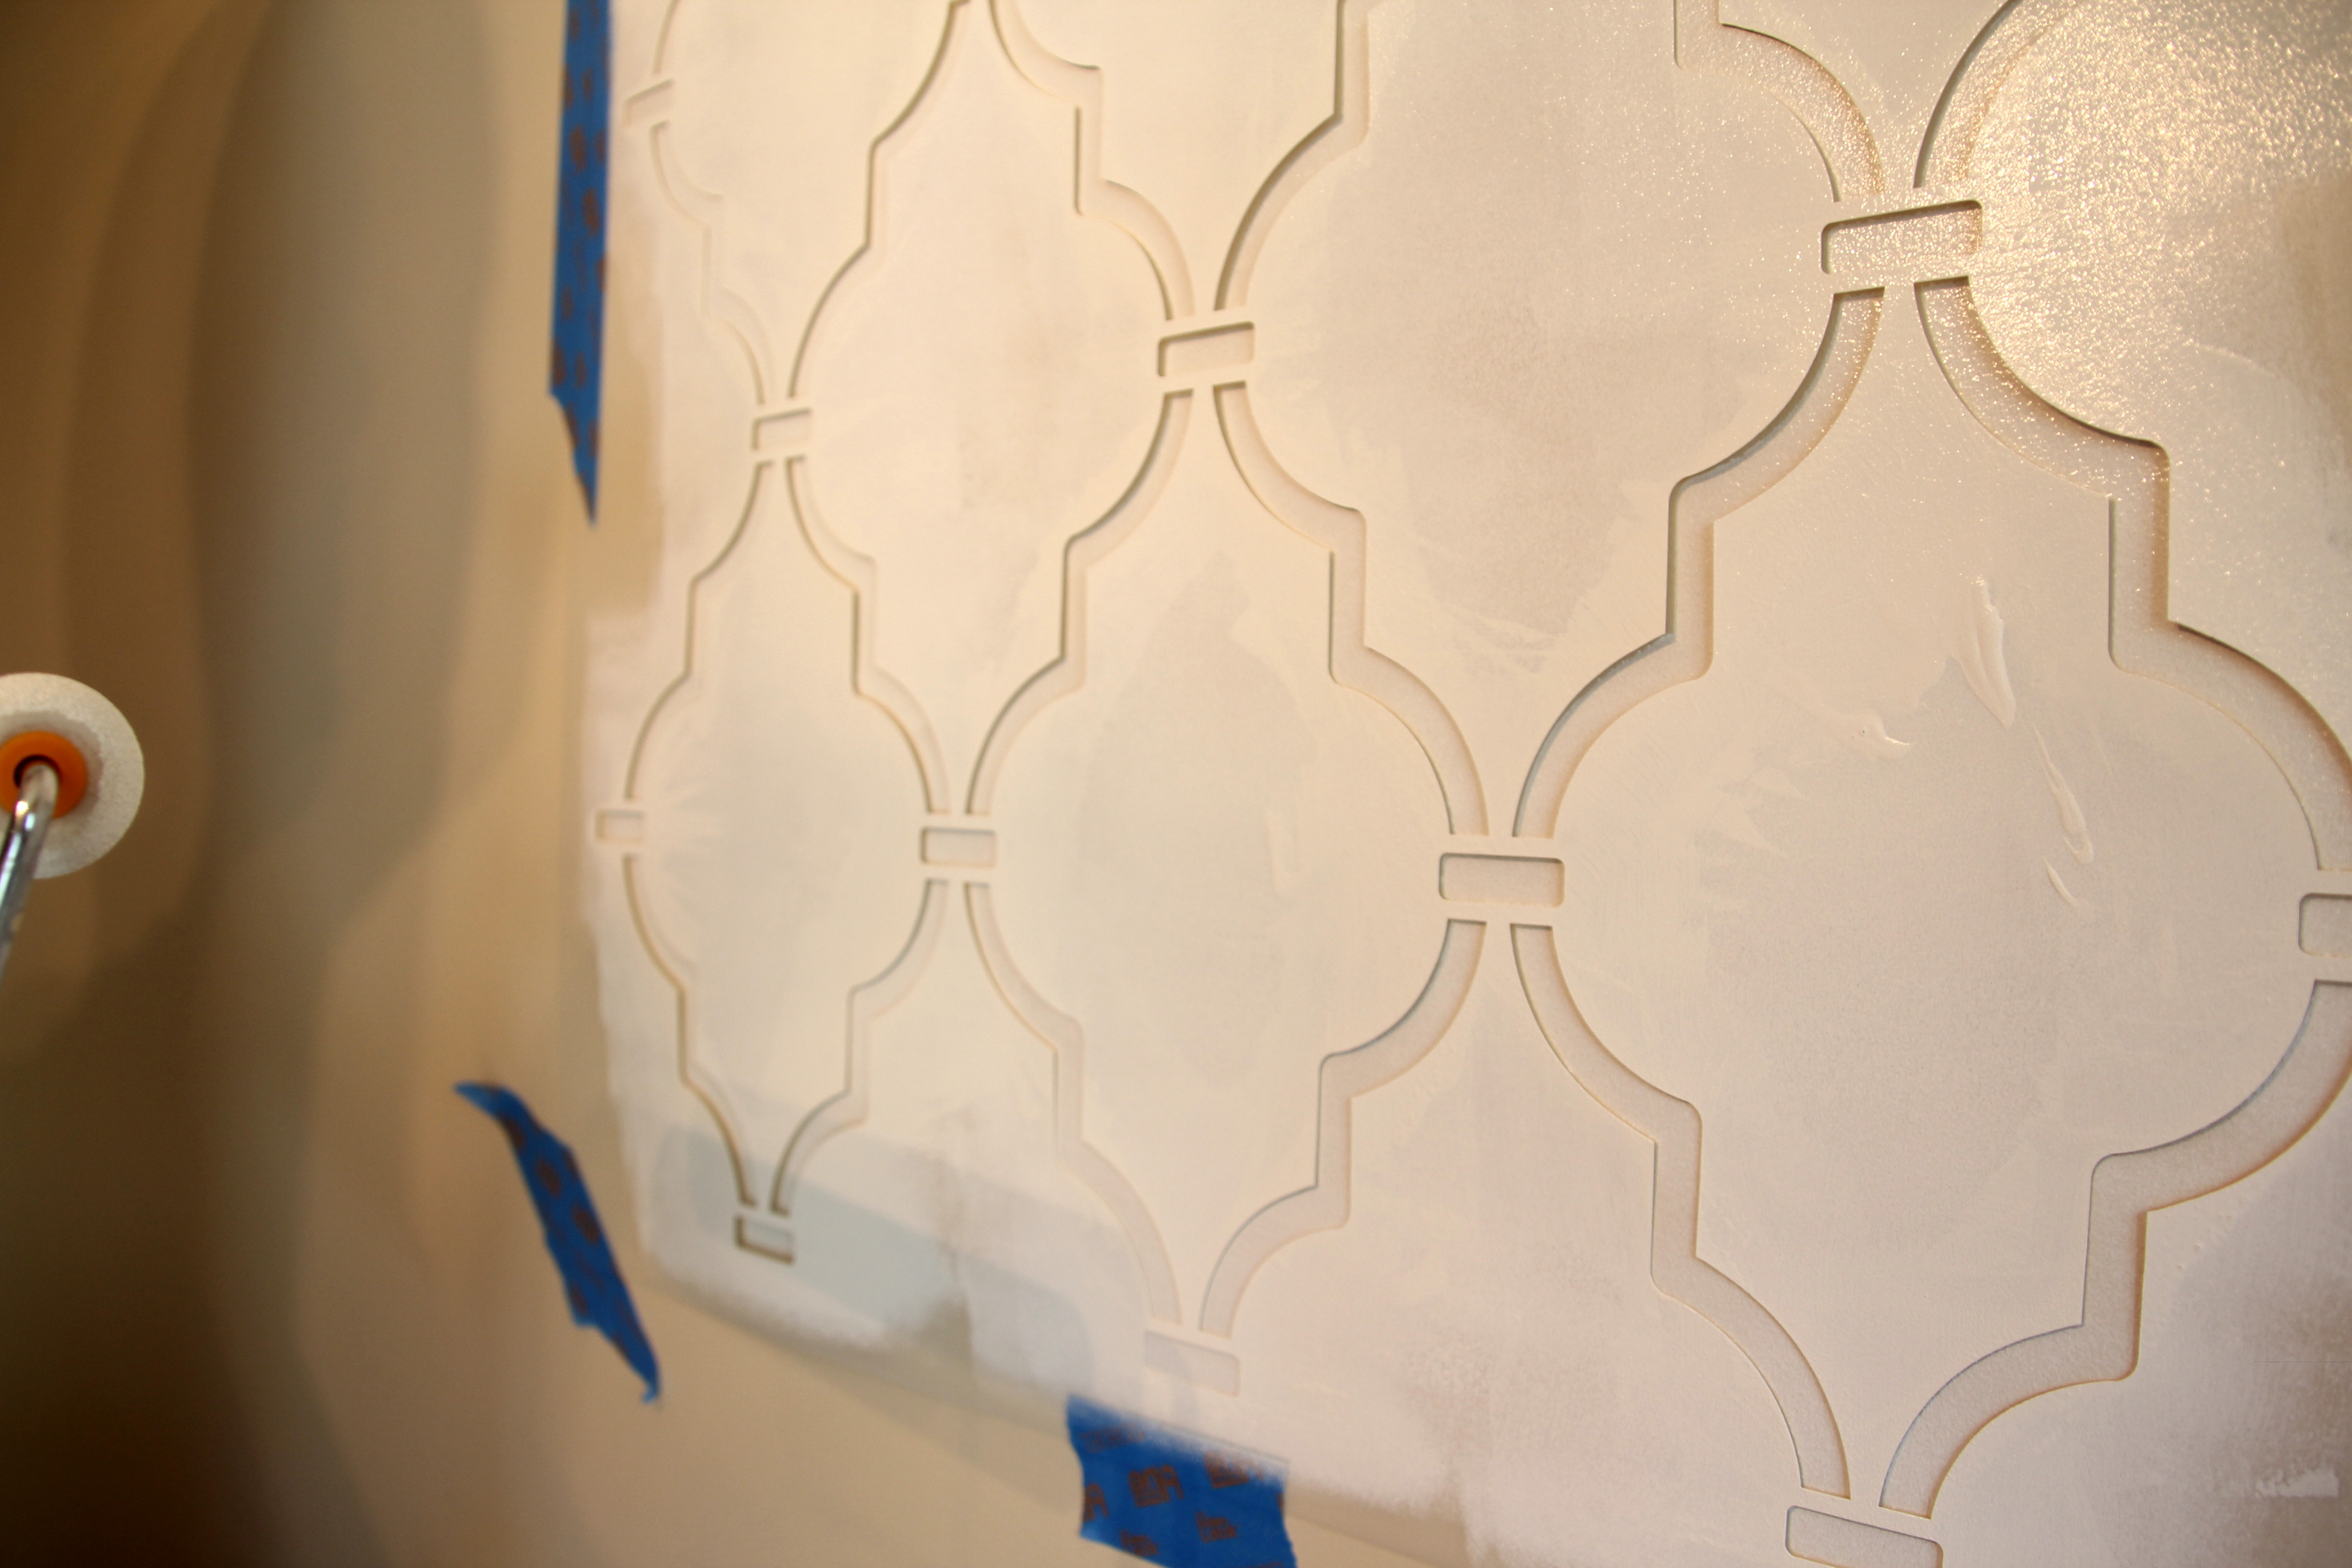 Stencils For Painting Stencil Wall Complete! | 346 Living